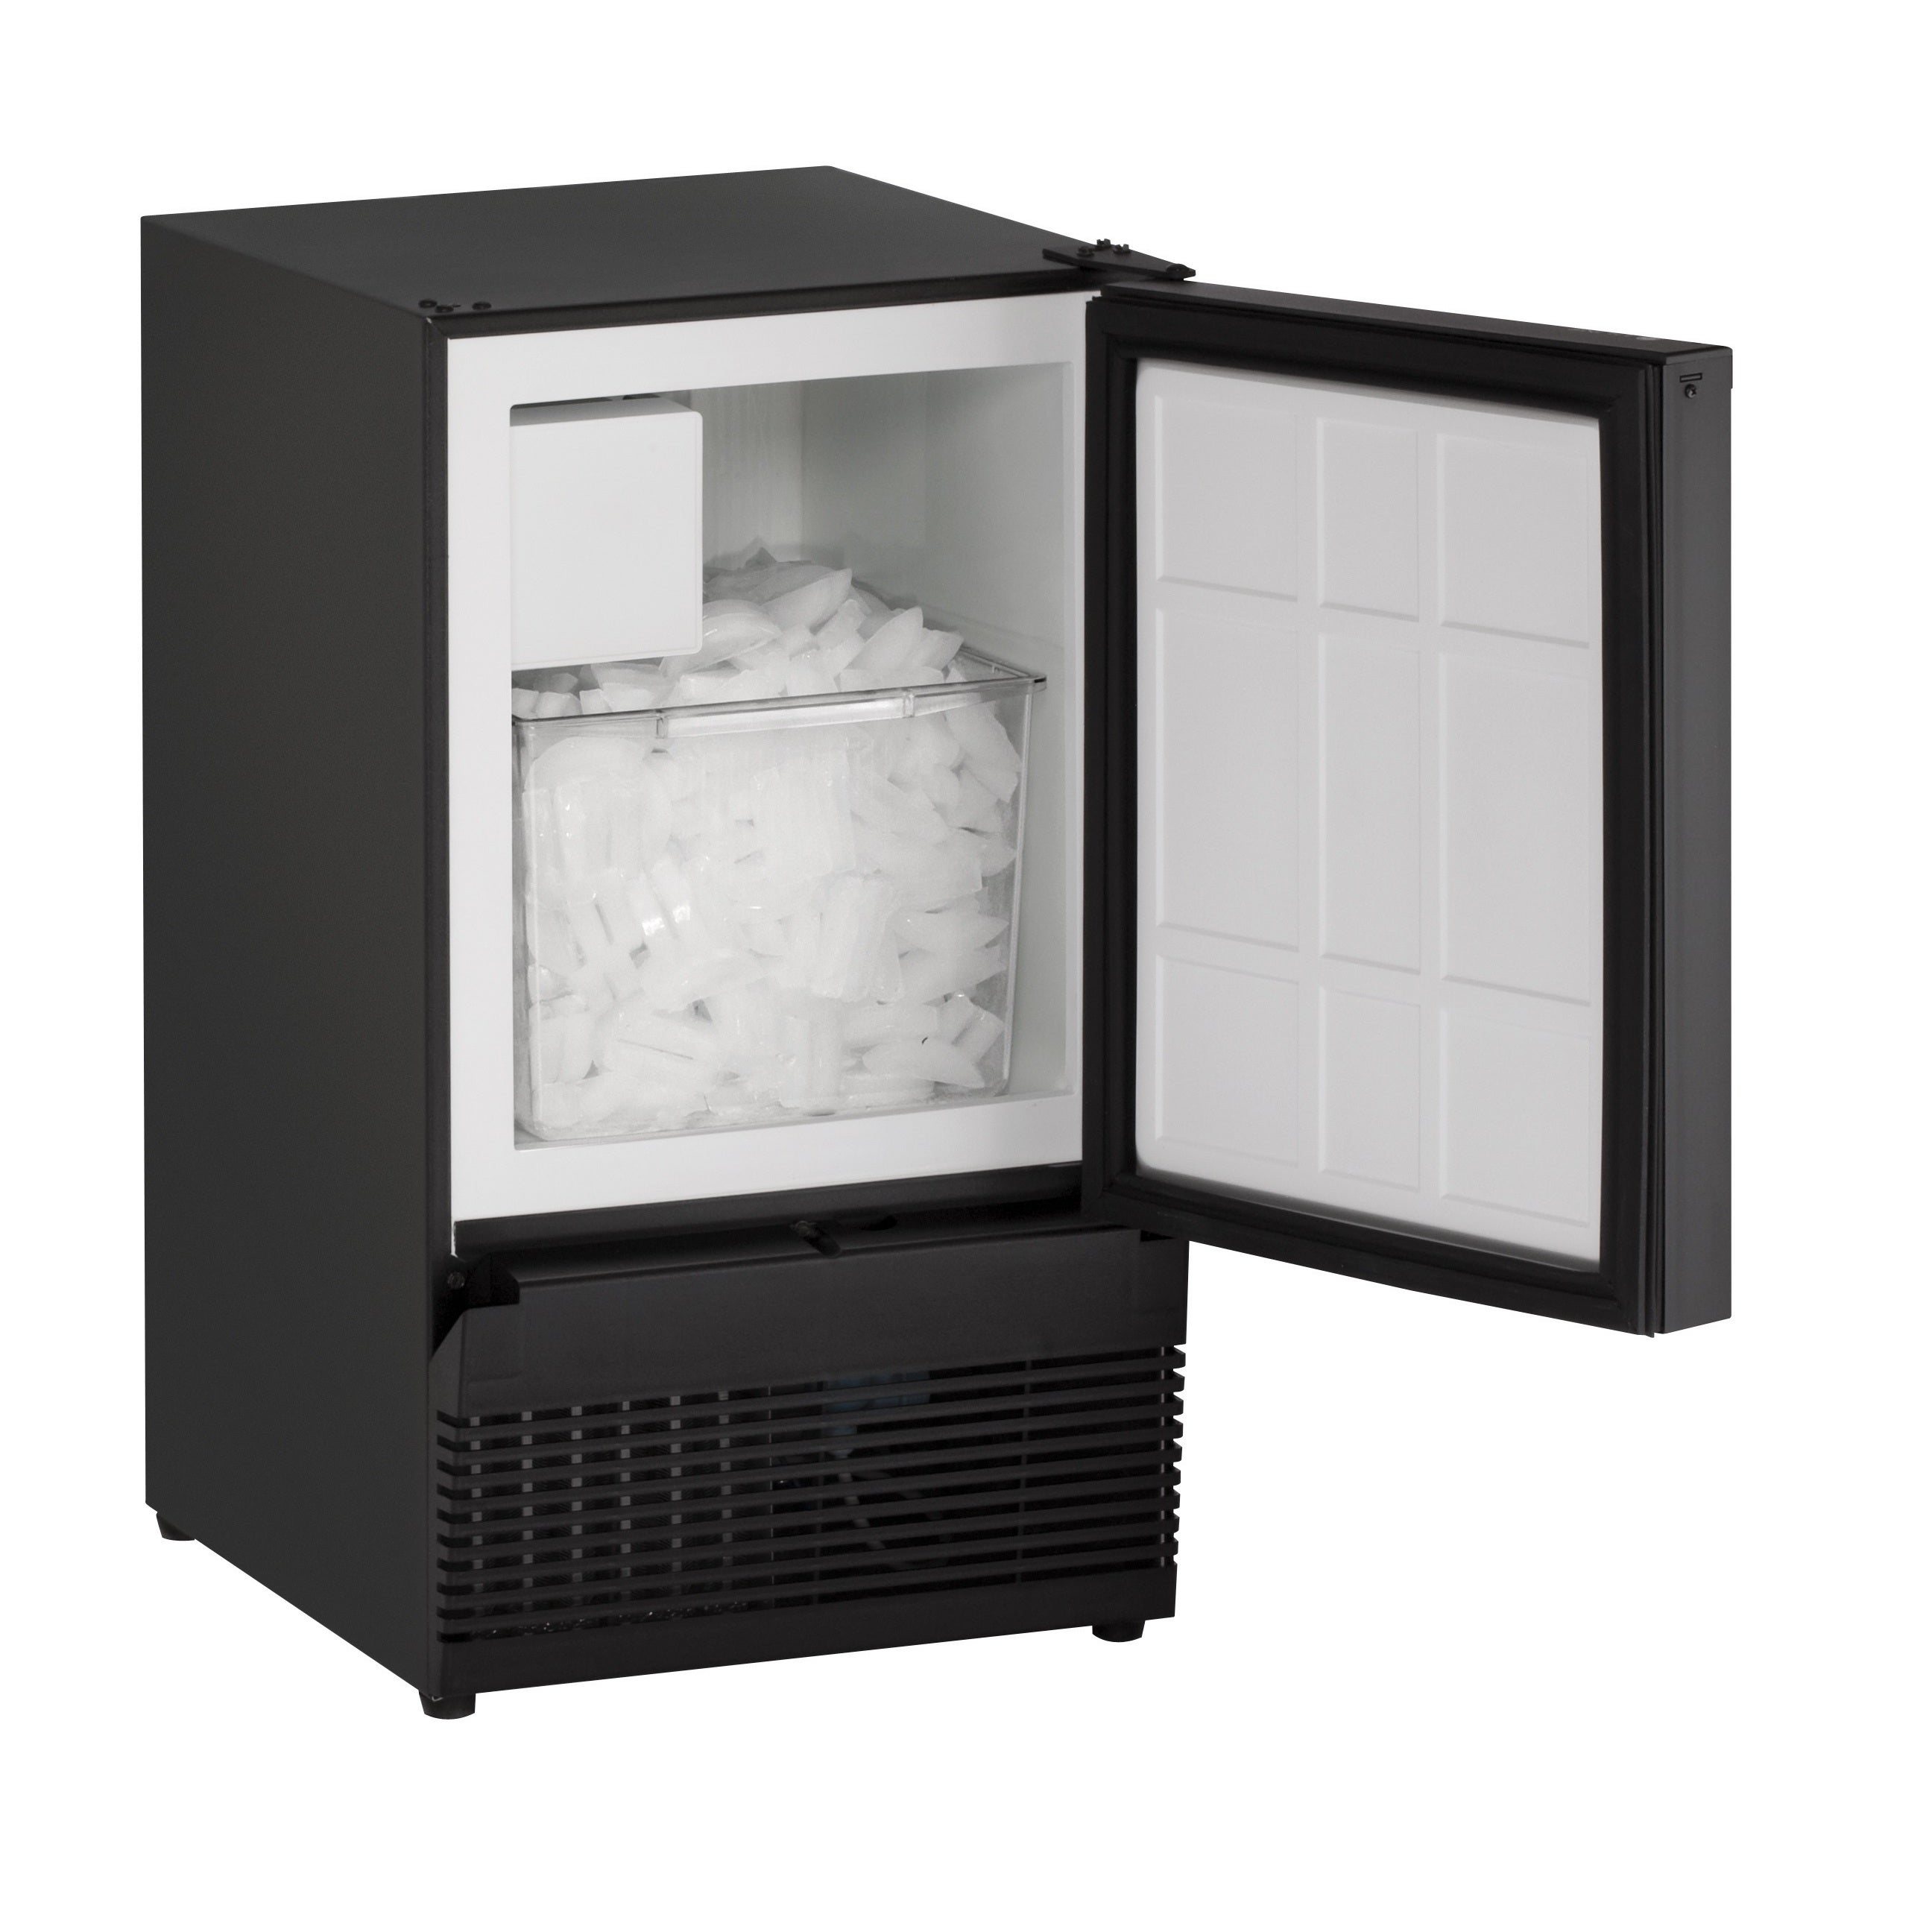 machine home product cube digital garden with nutrichef countertop steel stainless overstock of sizes making today shipping countertops icemaker maker free cubes ice